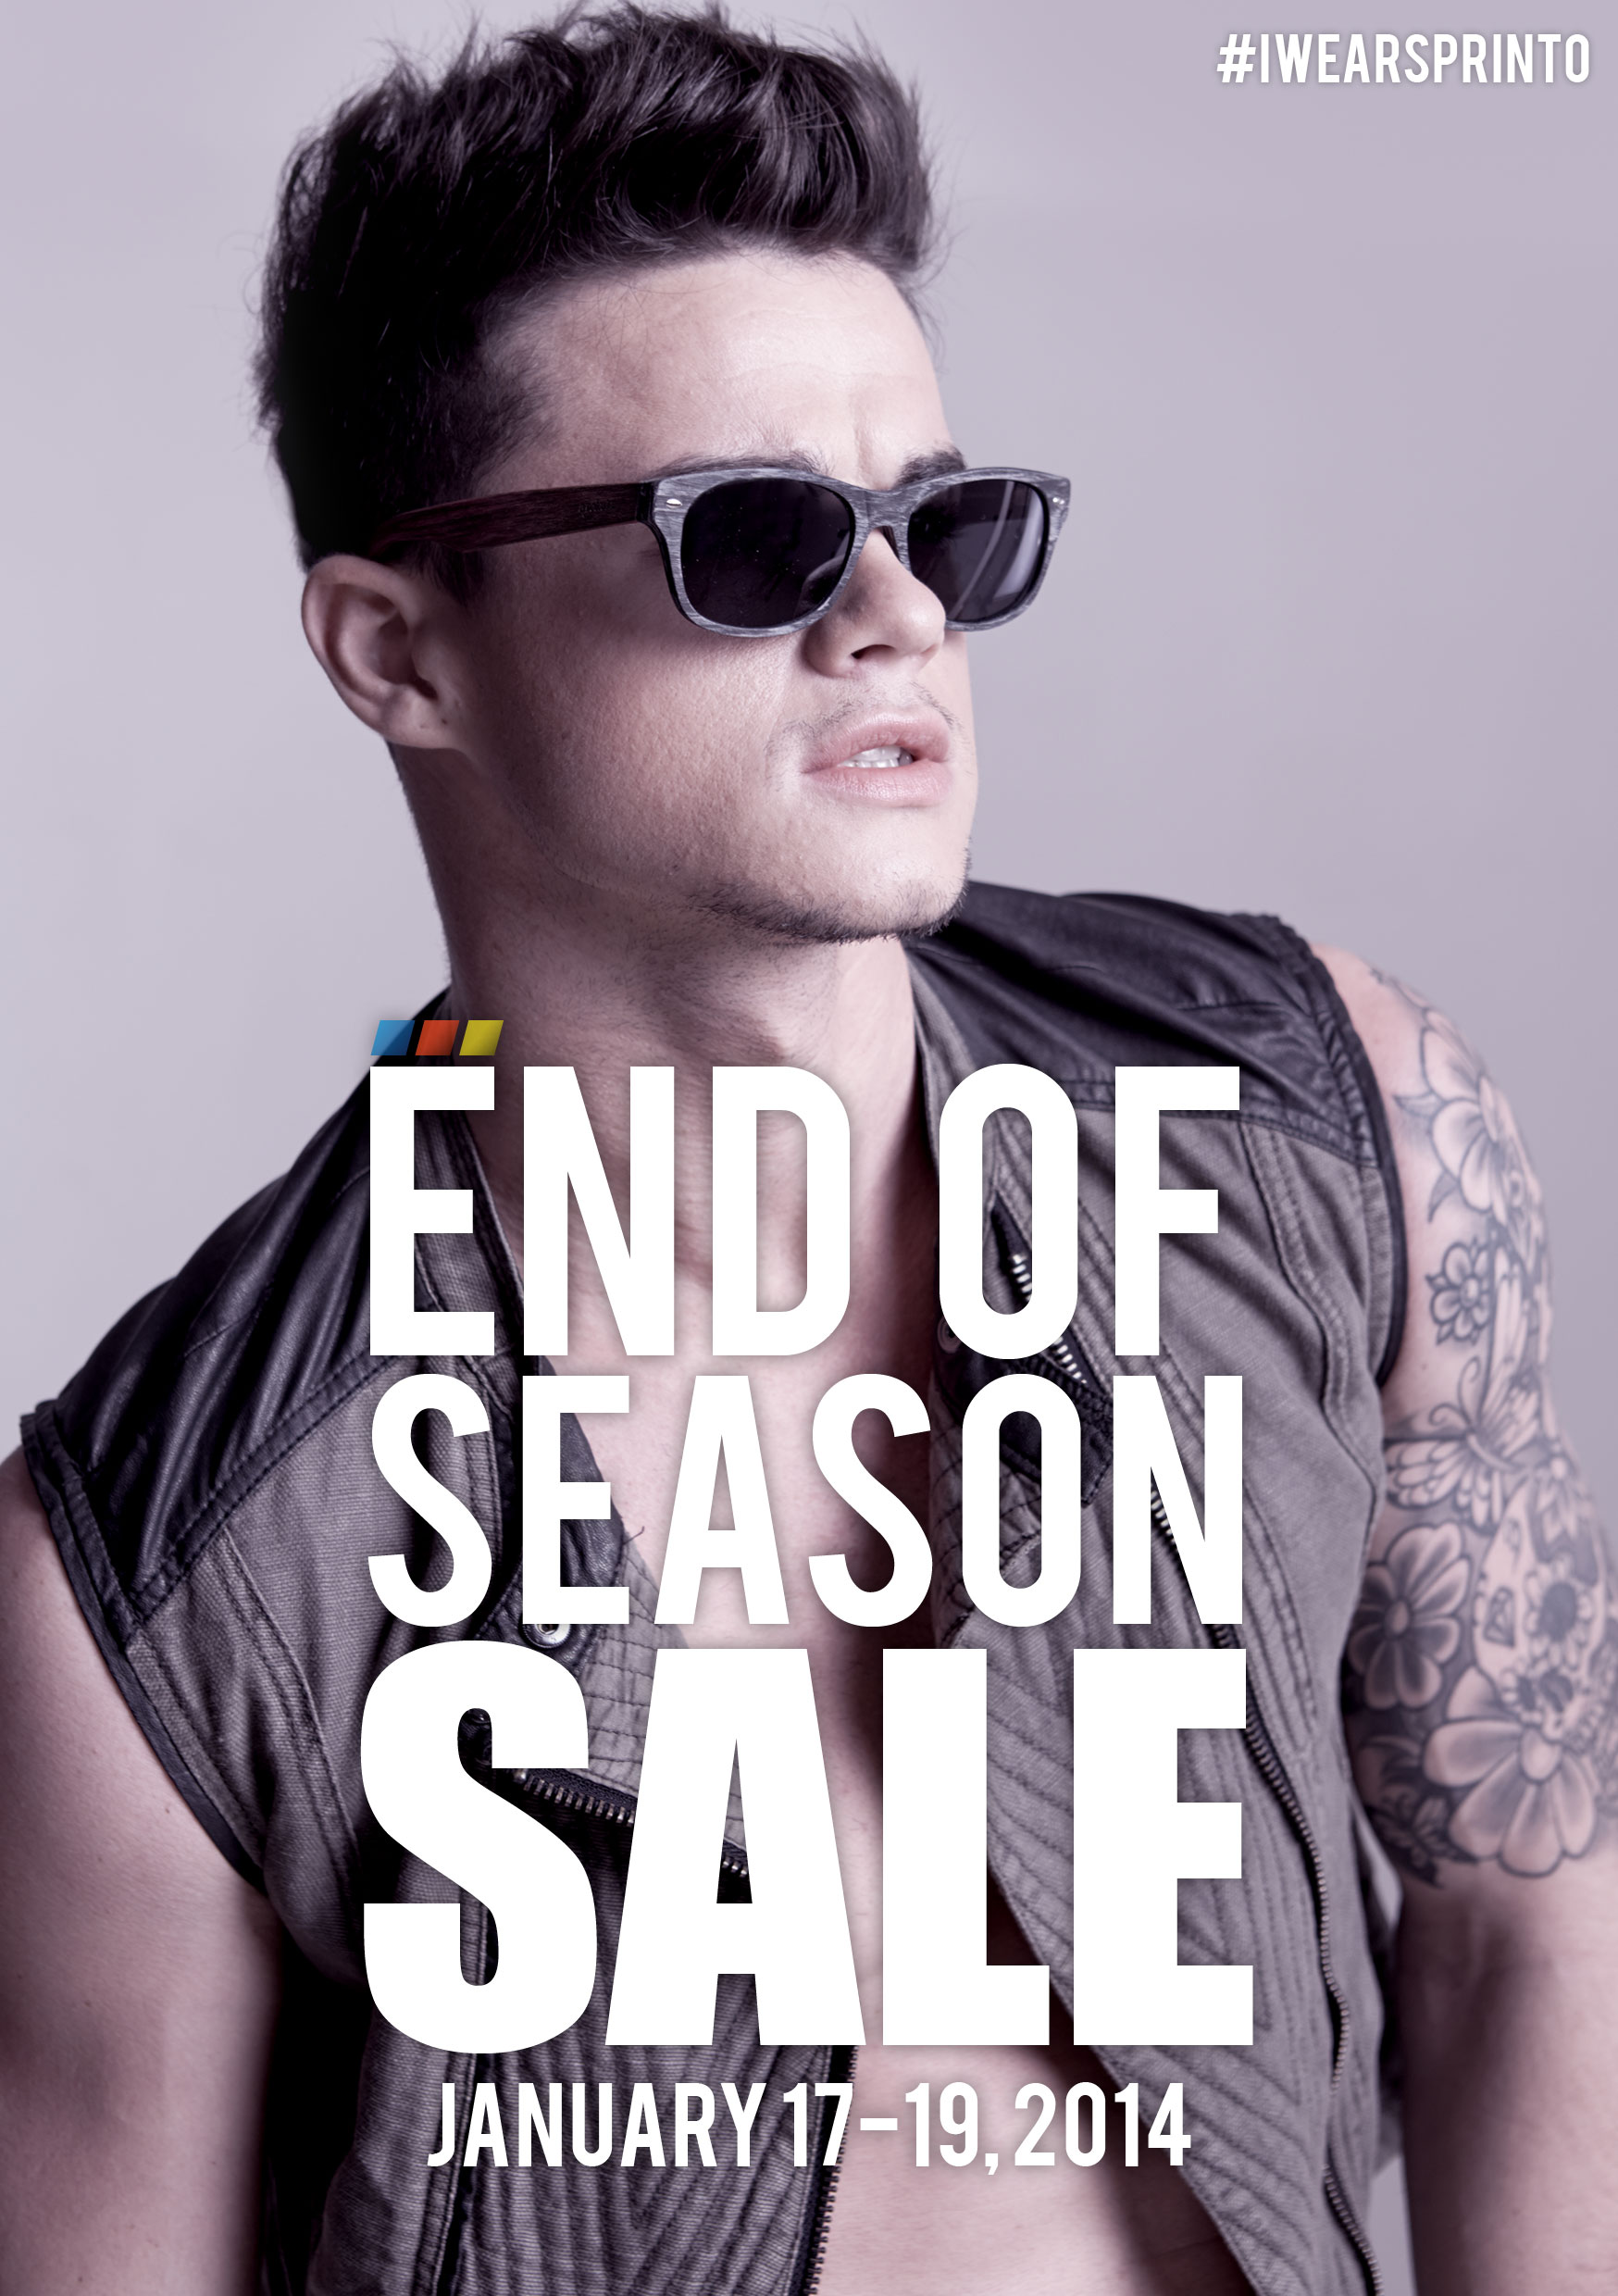 Sprinto End of Season Sale January 2014